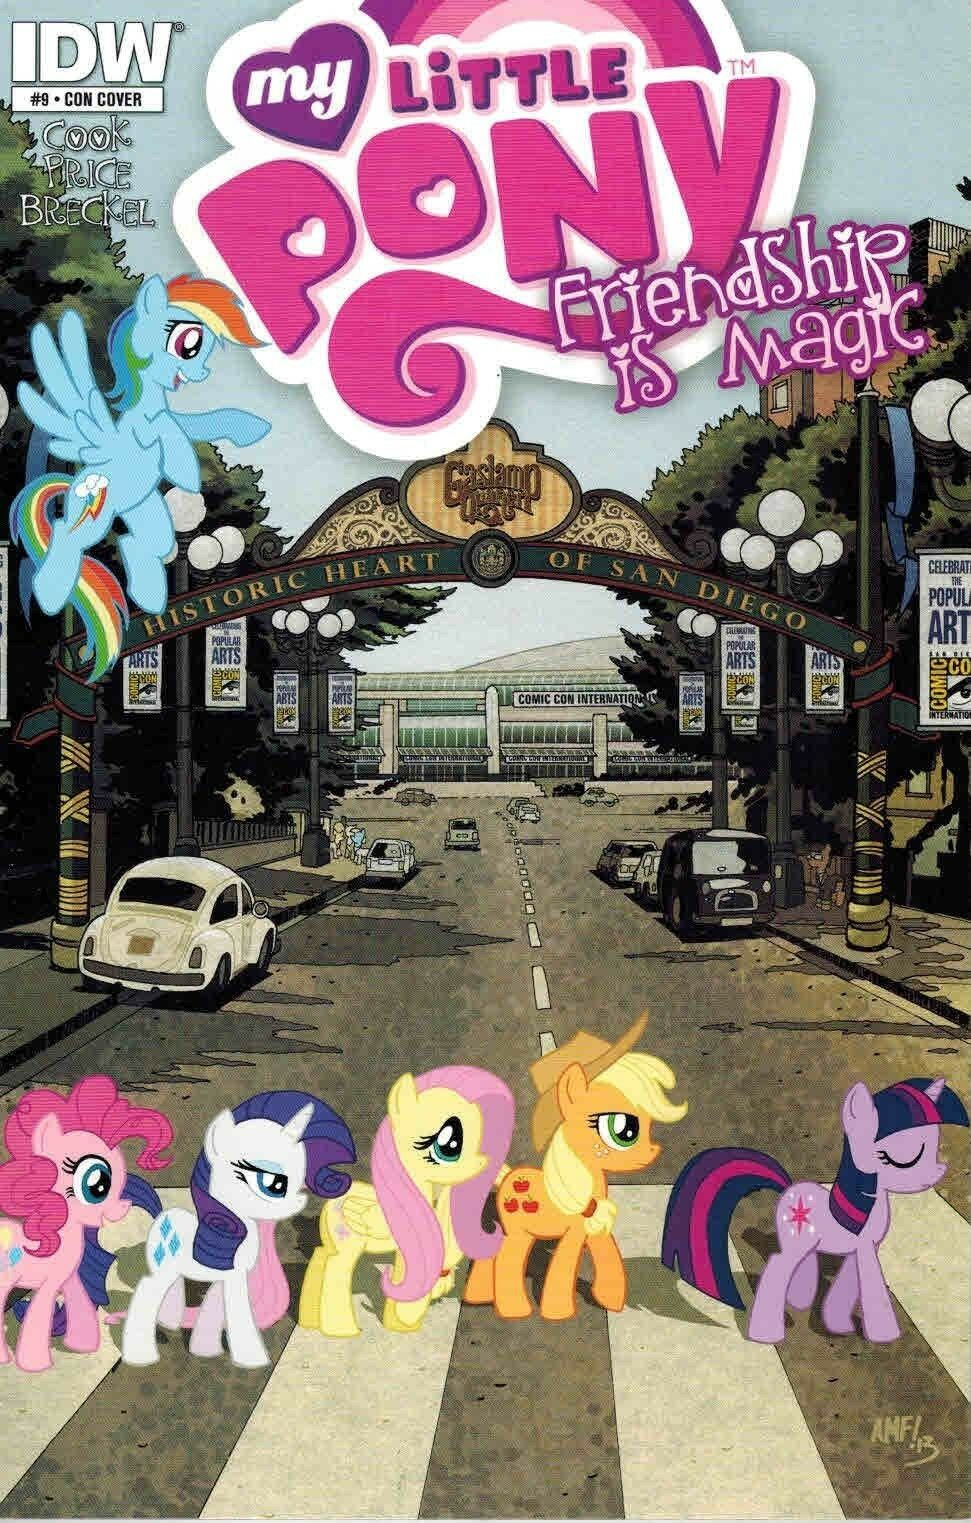 SDCC 2013 Exclusive My Little Pony Friendship is Magic #9 Comic Book